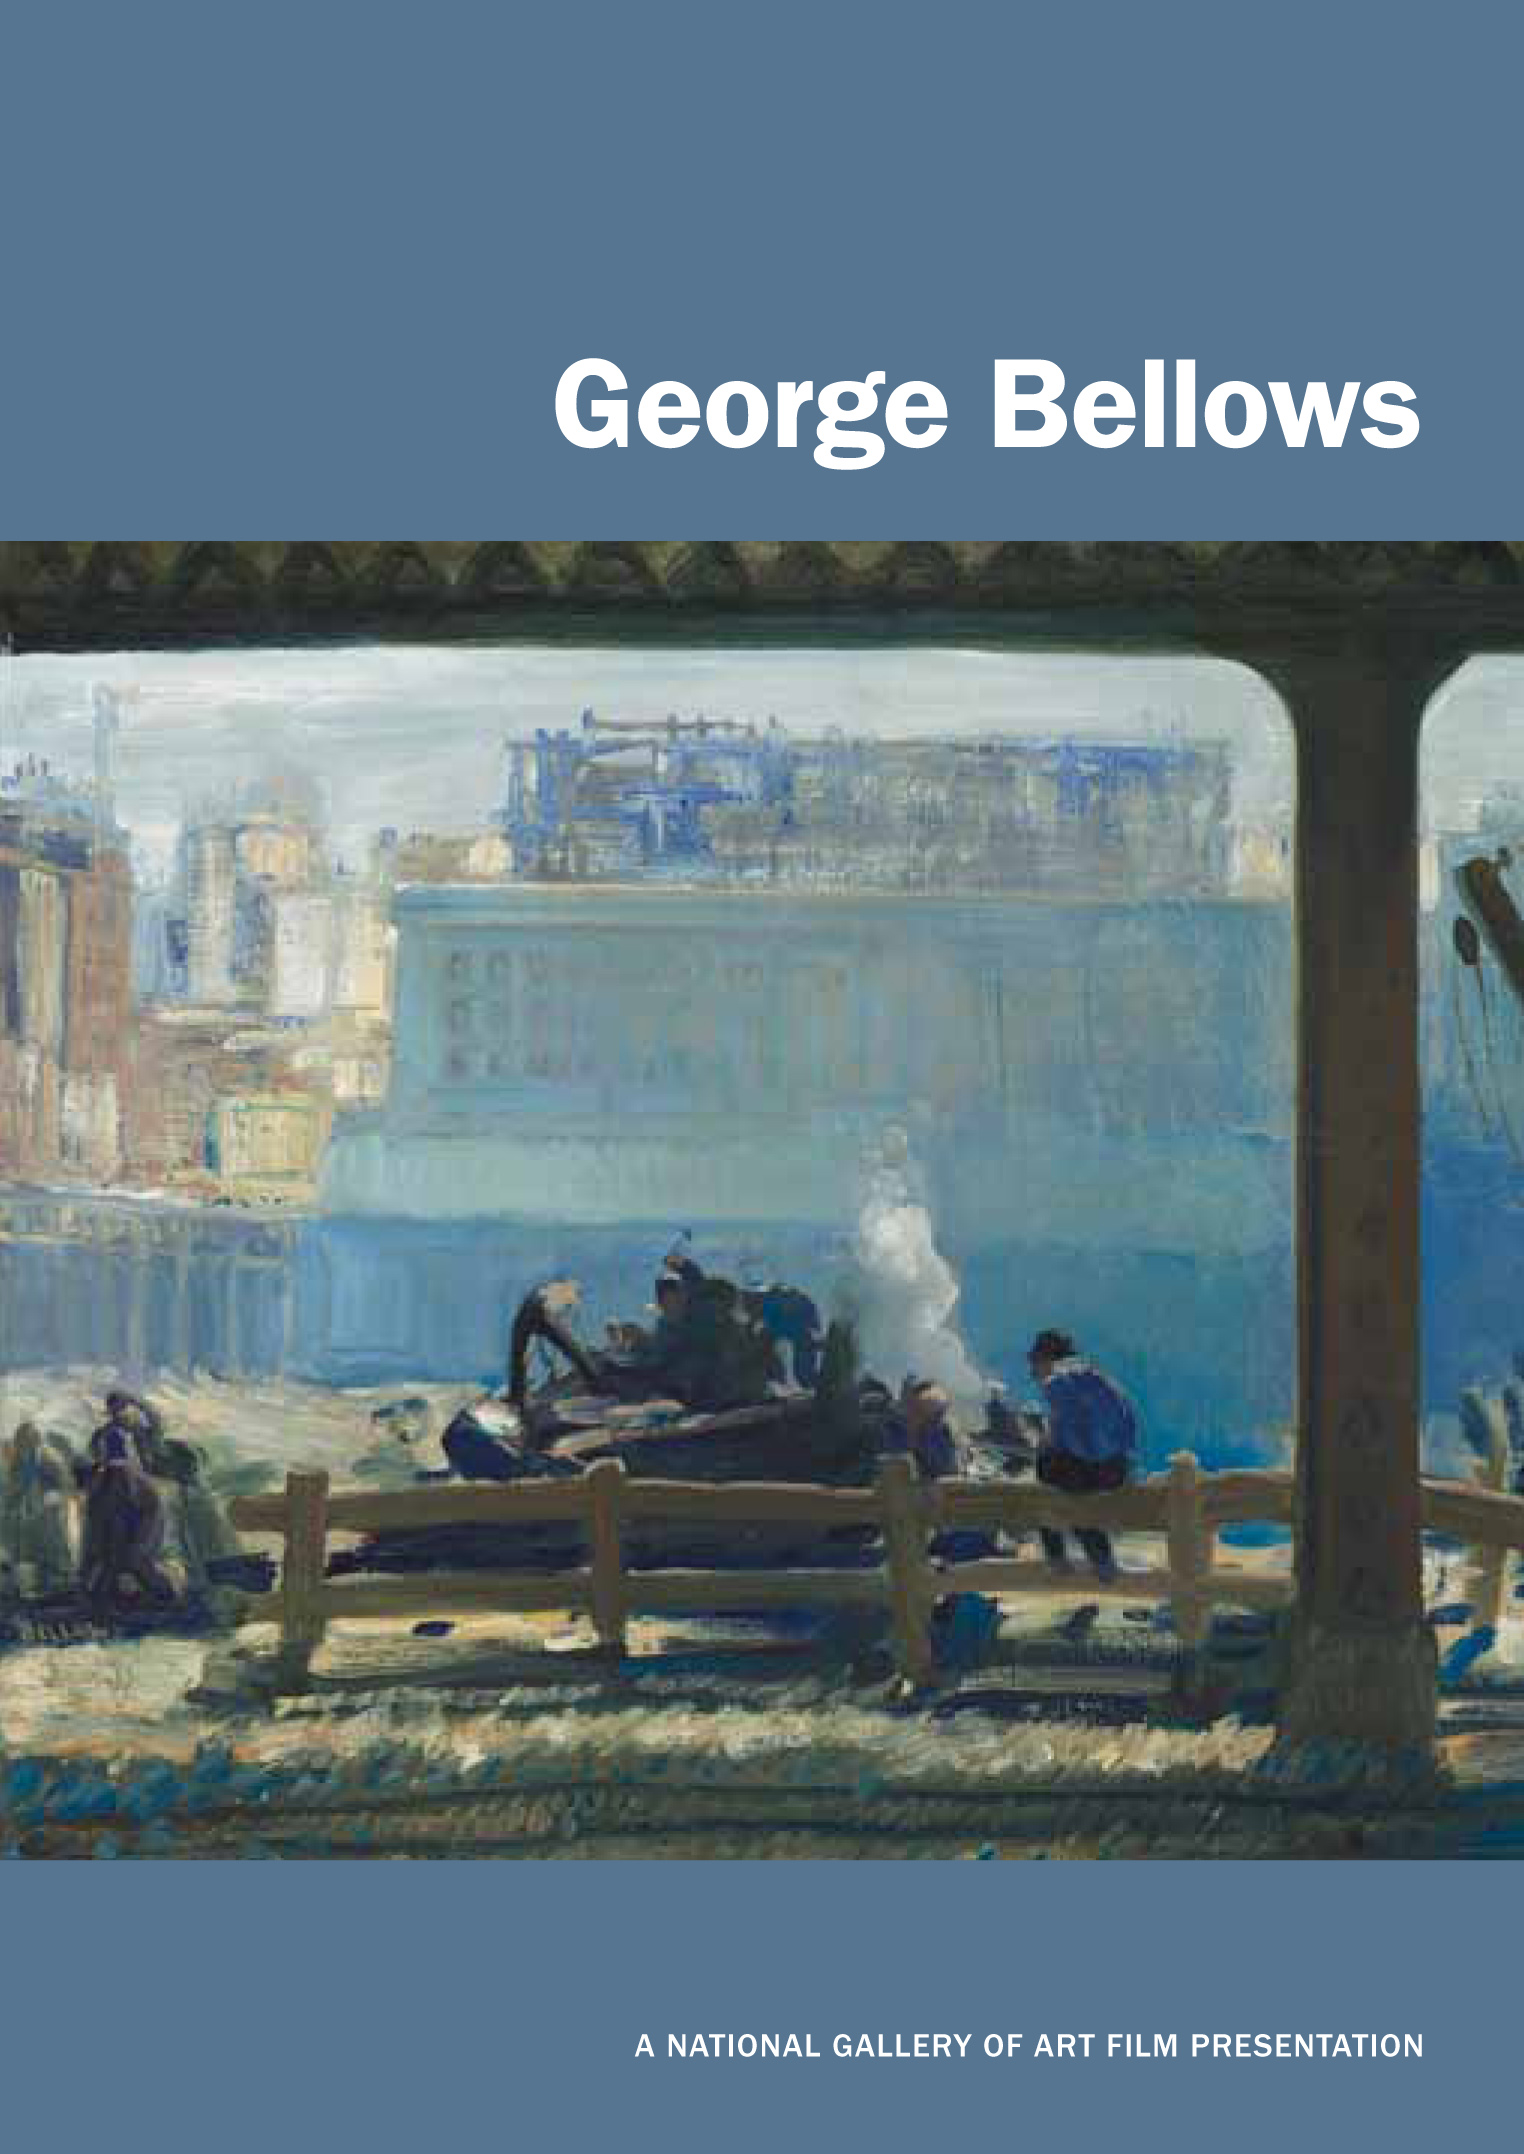 George Bellows: A National Gallery of Art Film Presentation